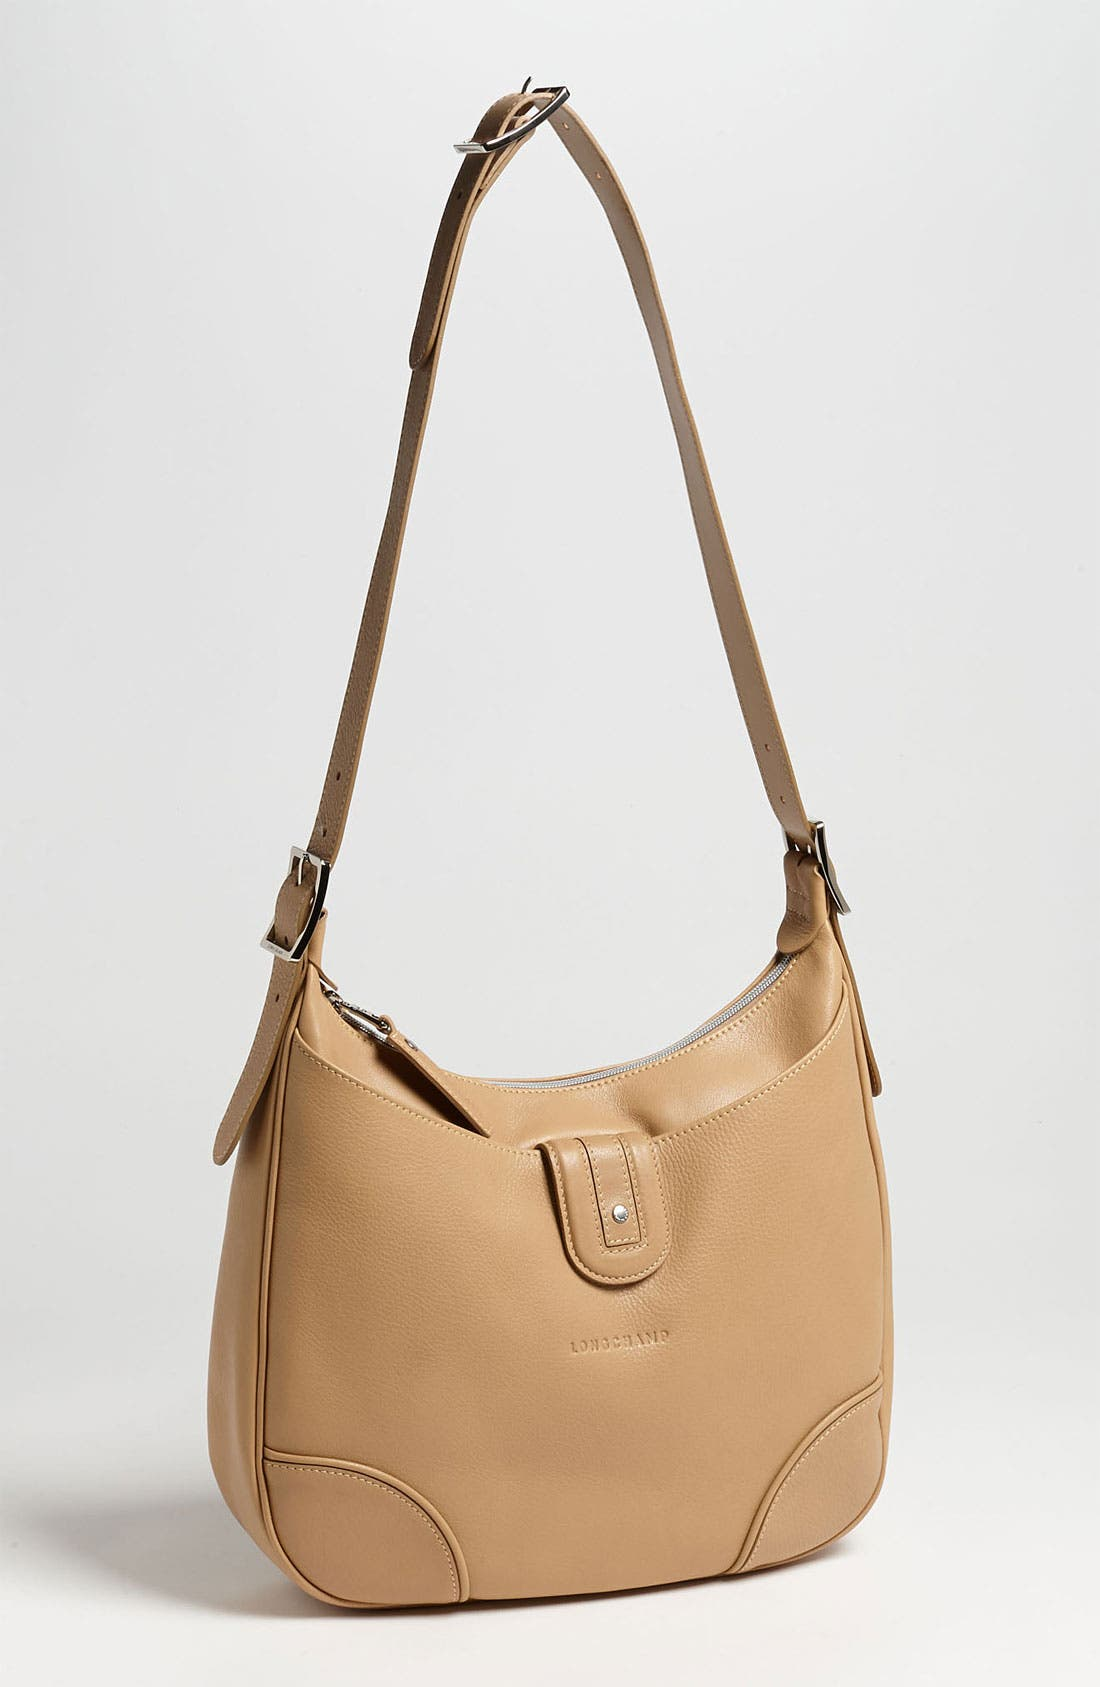 Alternate Image 1 Selected - Longchamp 'Cosmos' Hobo